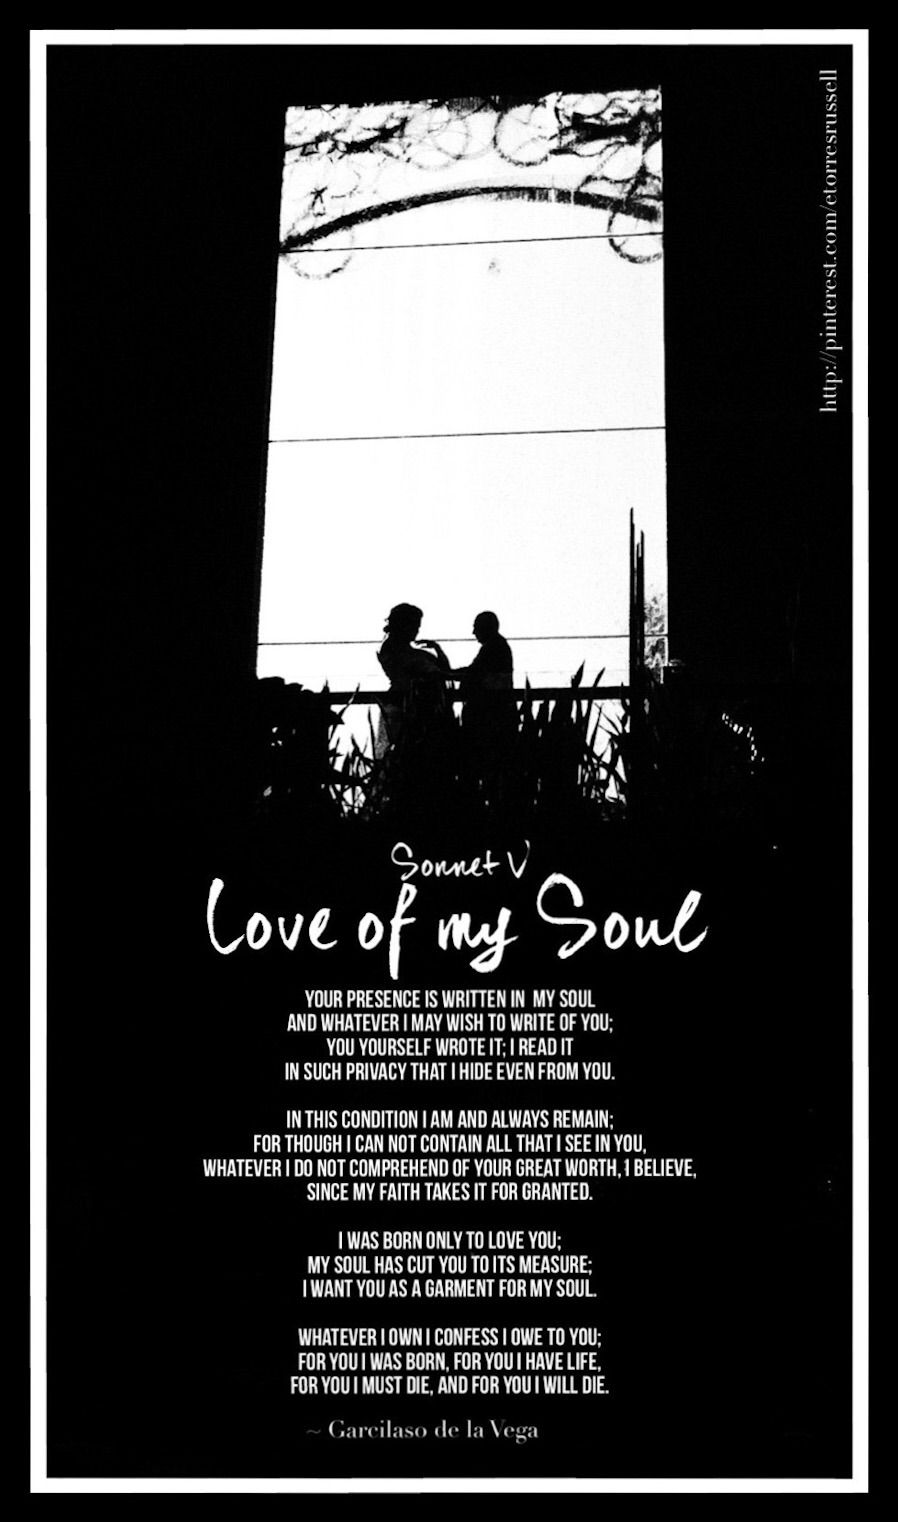 Sonnet V. LOVE OF MY SOUL by Garcilaso de la Vega